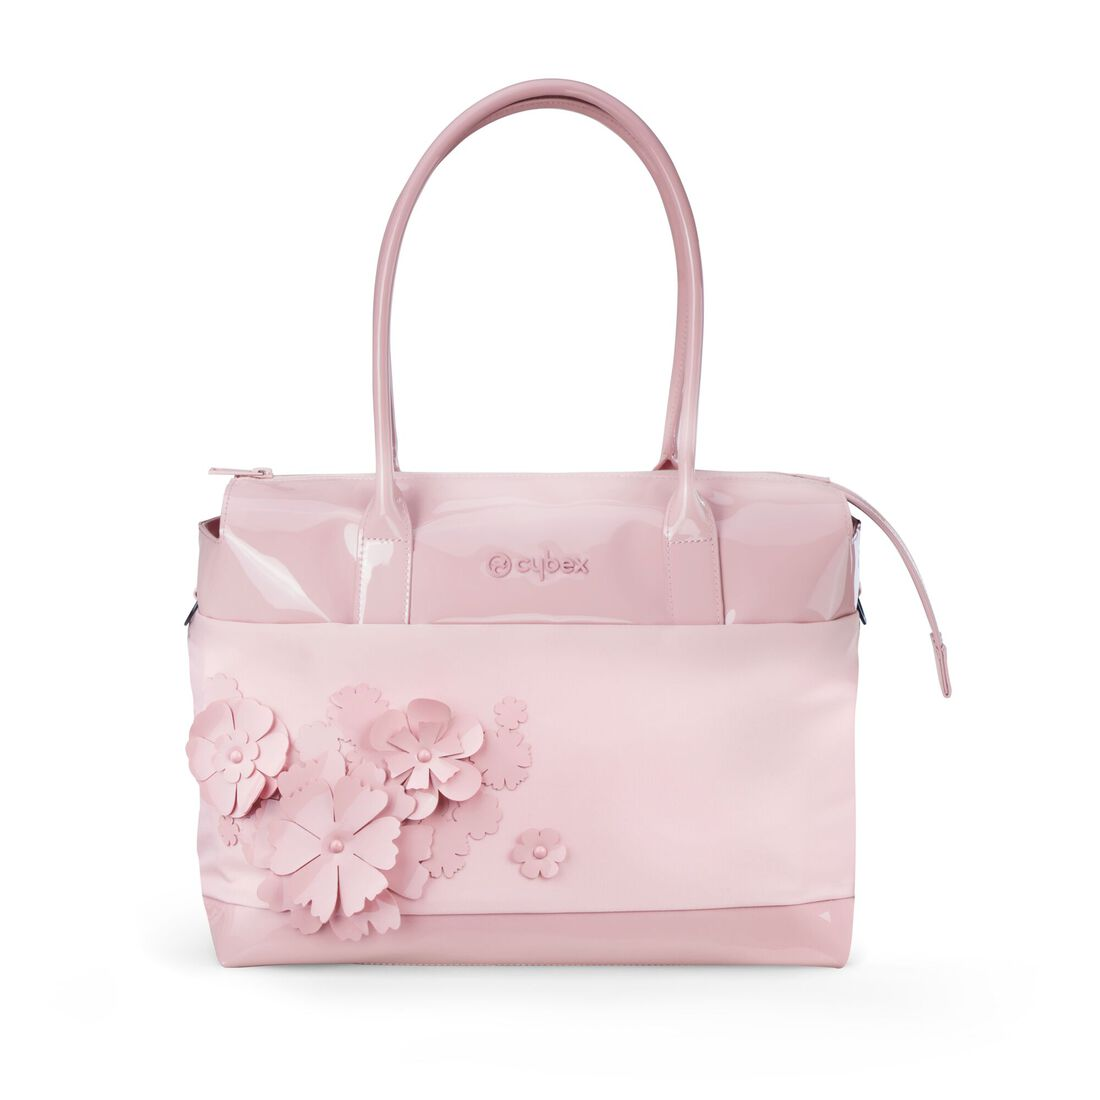 CYBEX Changing Bag Simply Flowers - Pale Blush in Pale Blush large image number 1